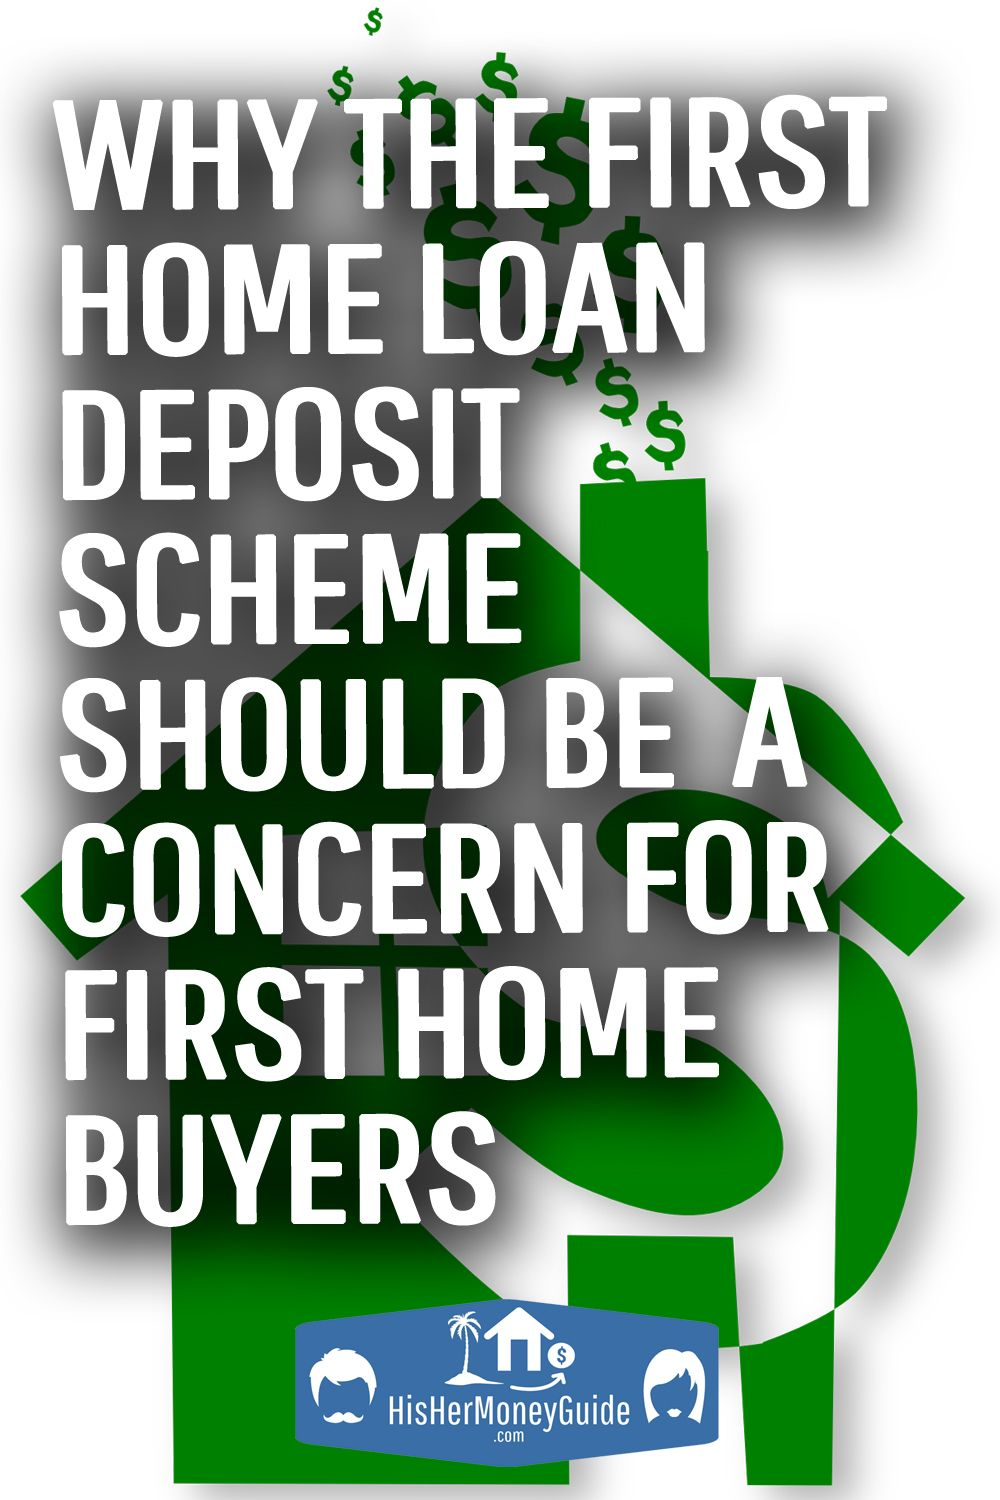 The 5 First Home Loan Deposit Scheme Worries Me Hishermoneyguide In 2020 Personal Financial Planning Investment Tips Personal Finance